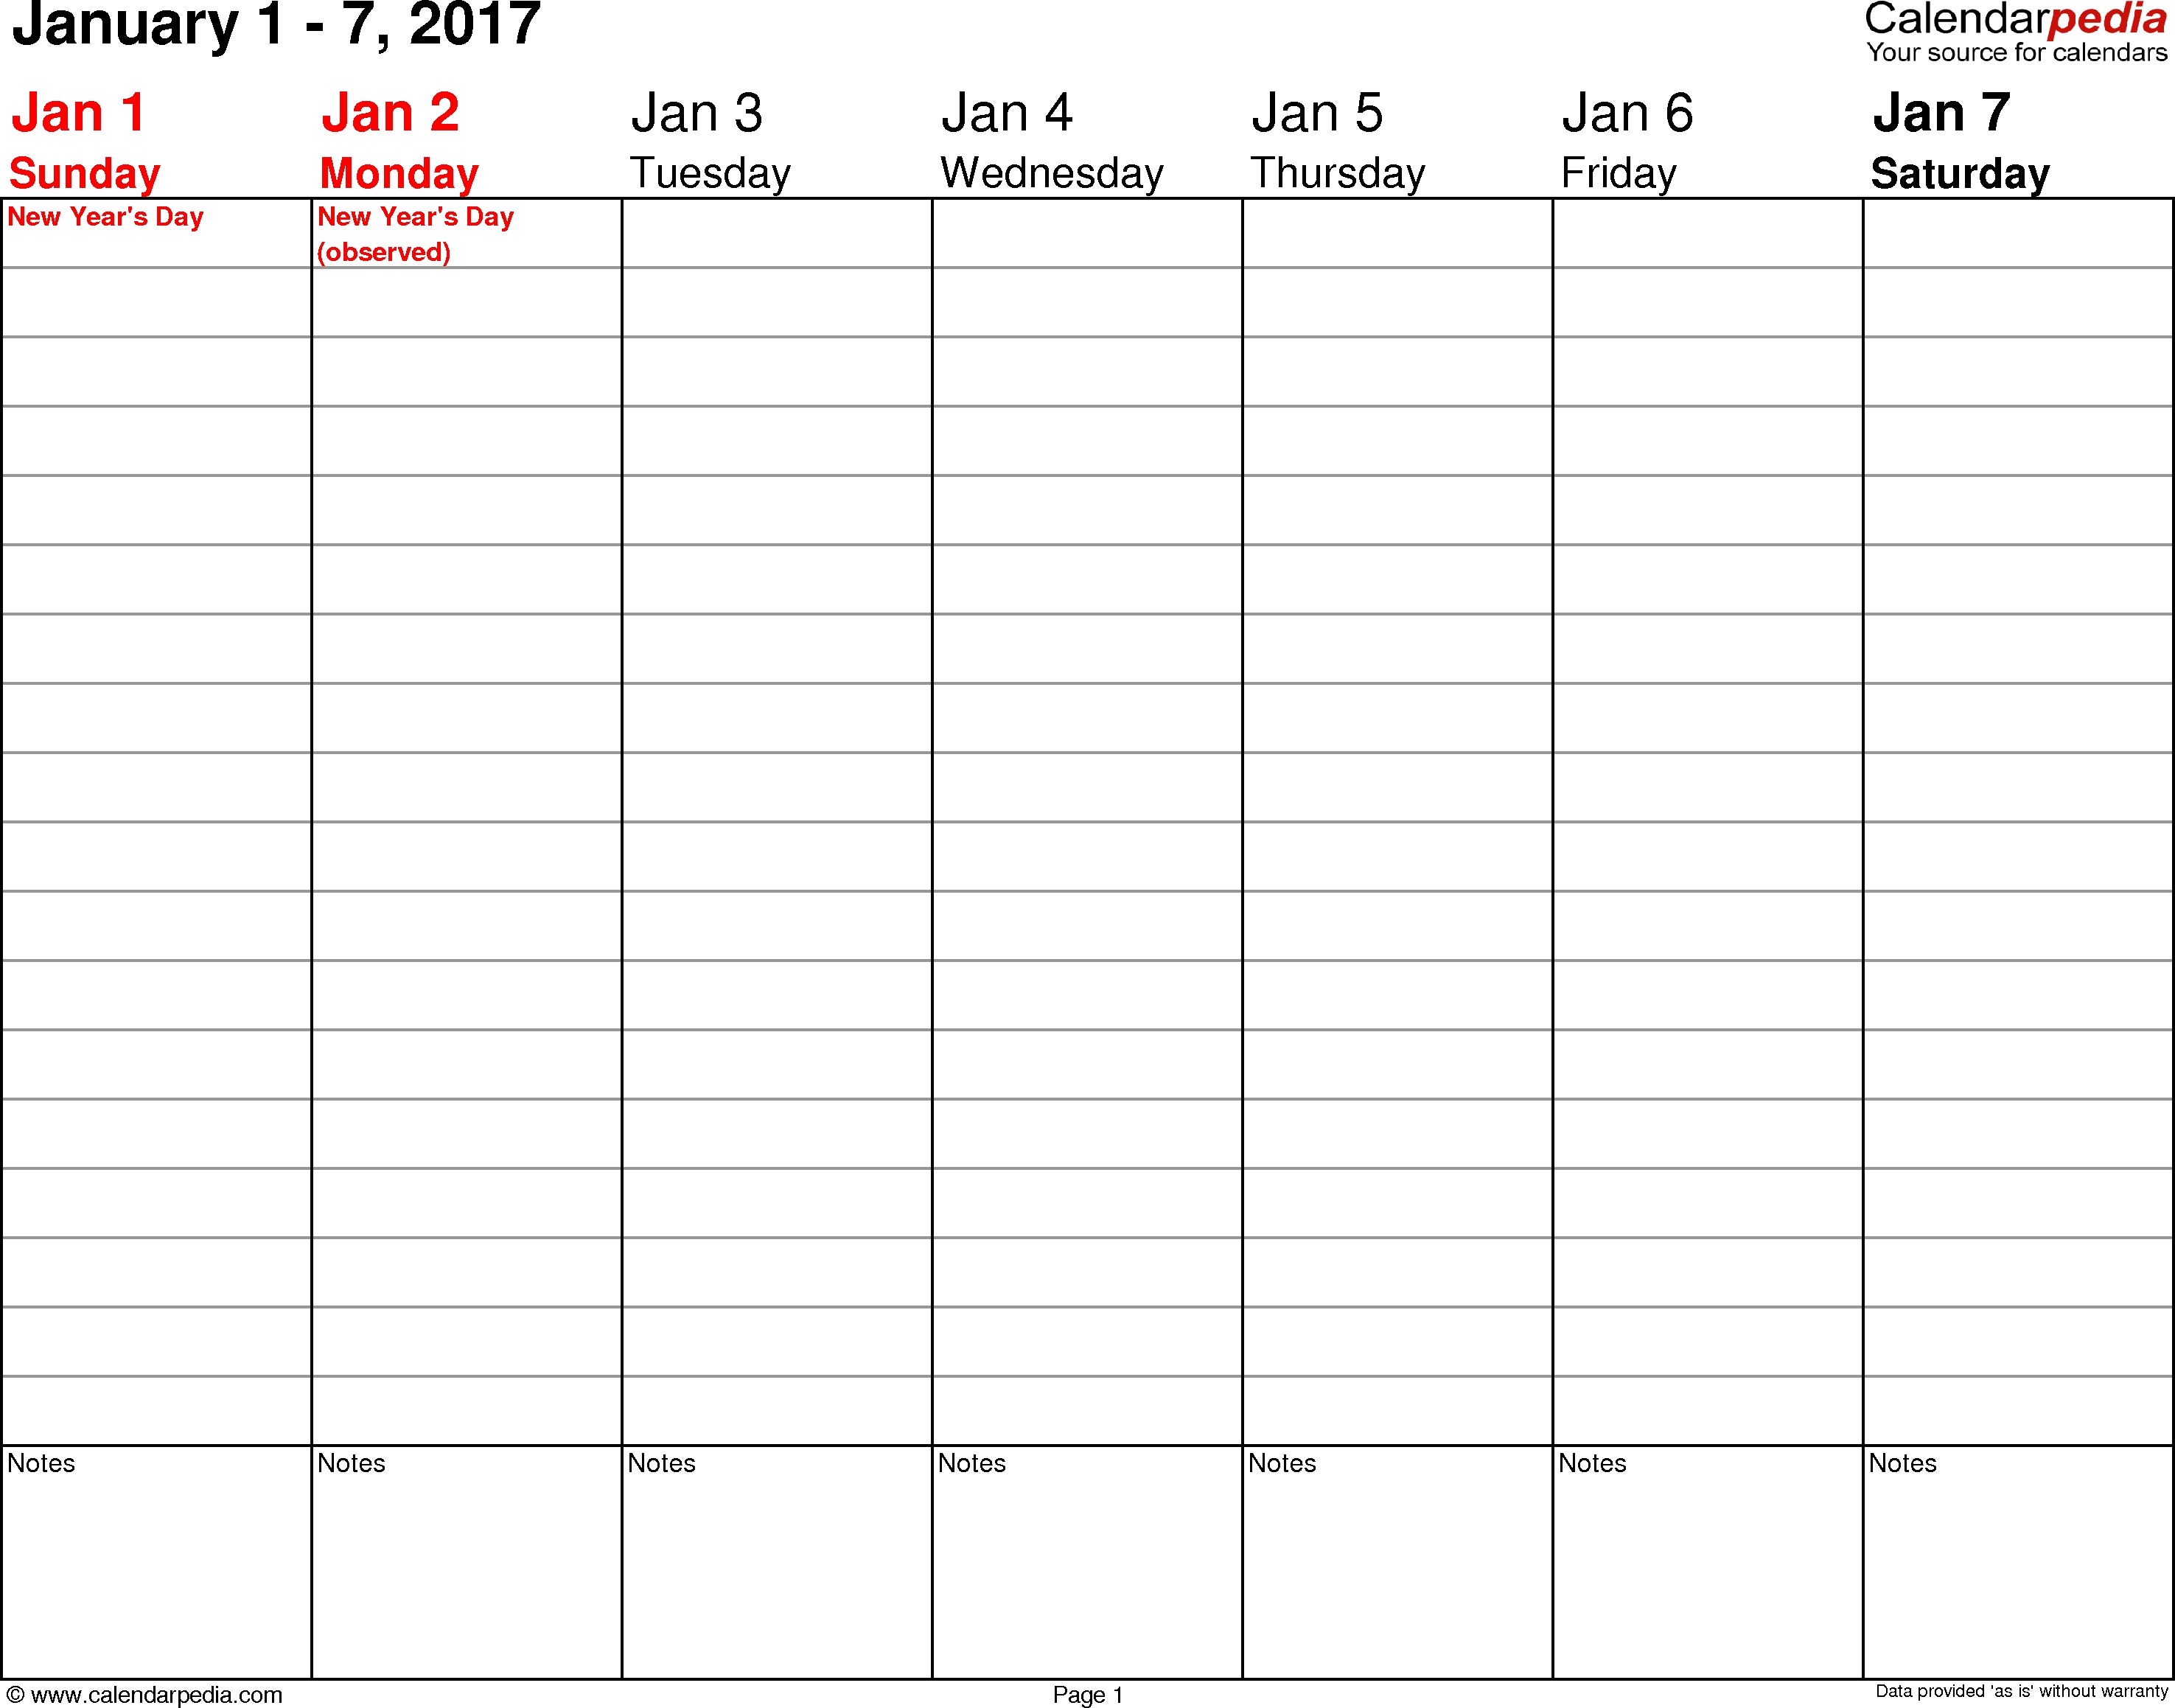 Weekly Calendar 2017 For Word - 12 Free Printable Templates in Printable Calendar Weekly Planner Free